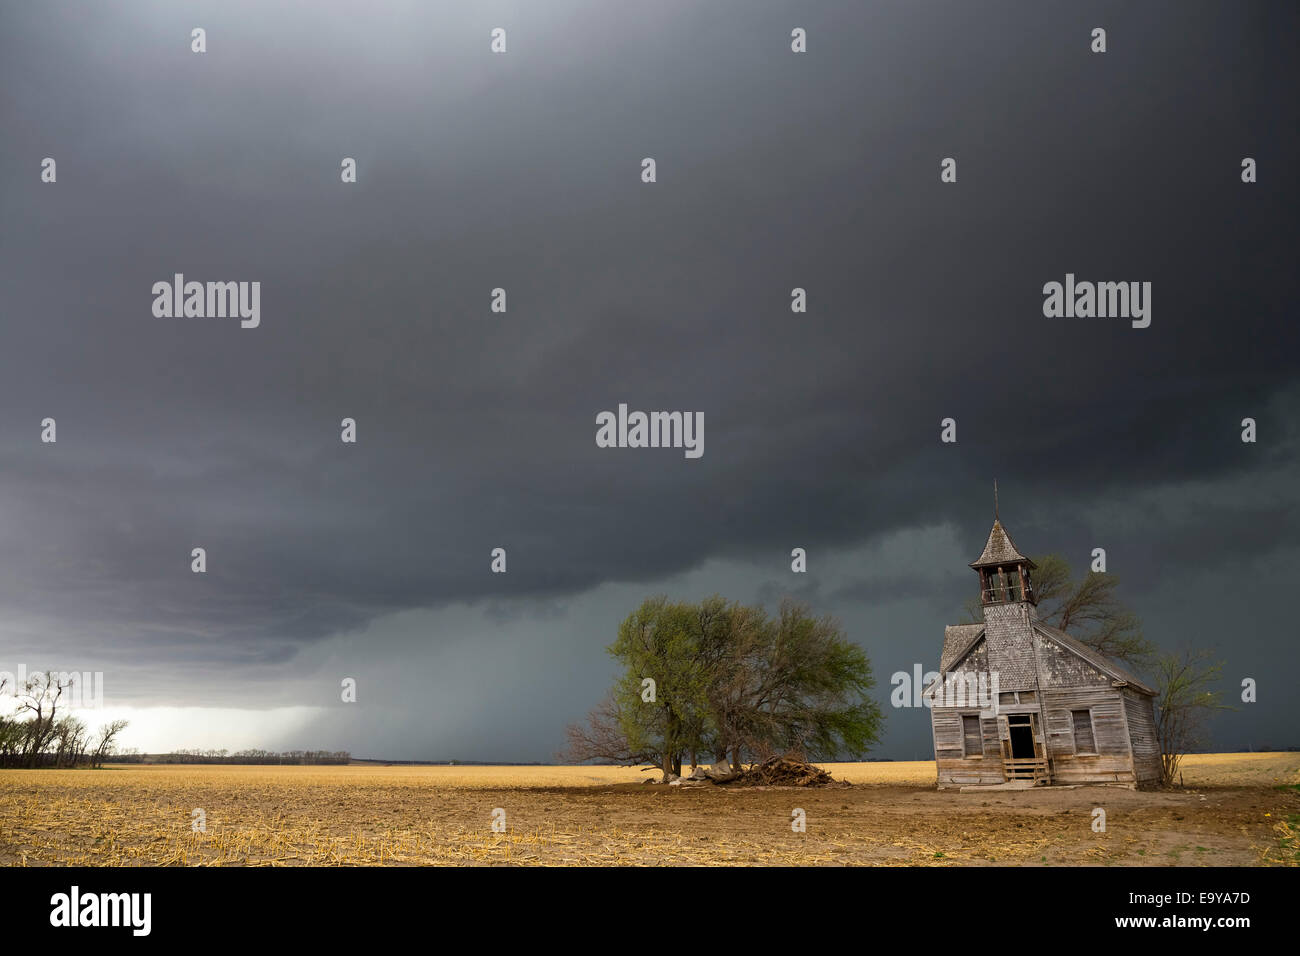 Outflow behind a tornado warned supercell approaches an old weathered school house in eastern Nebraska. - Stock Image